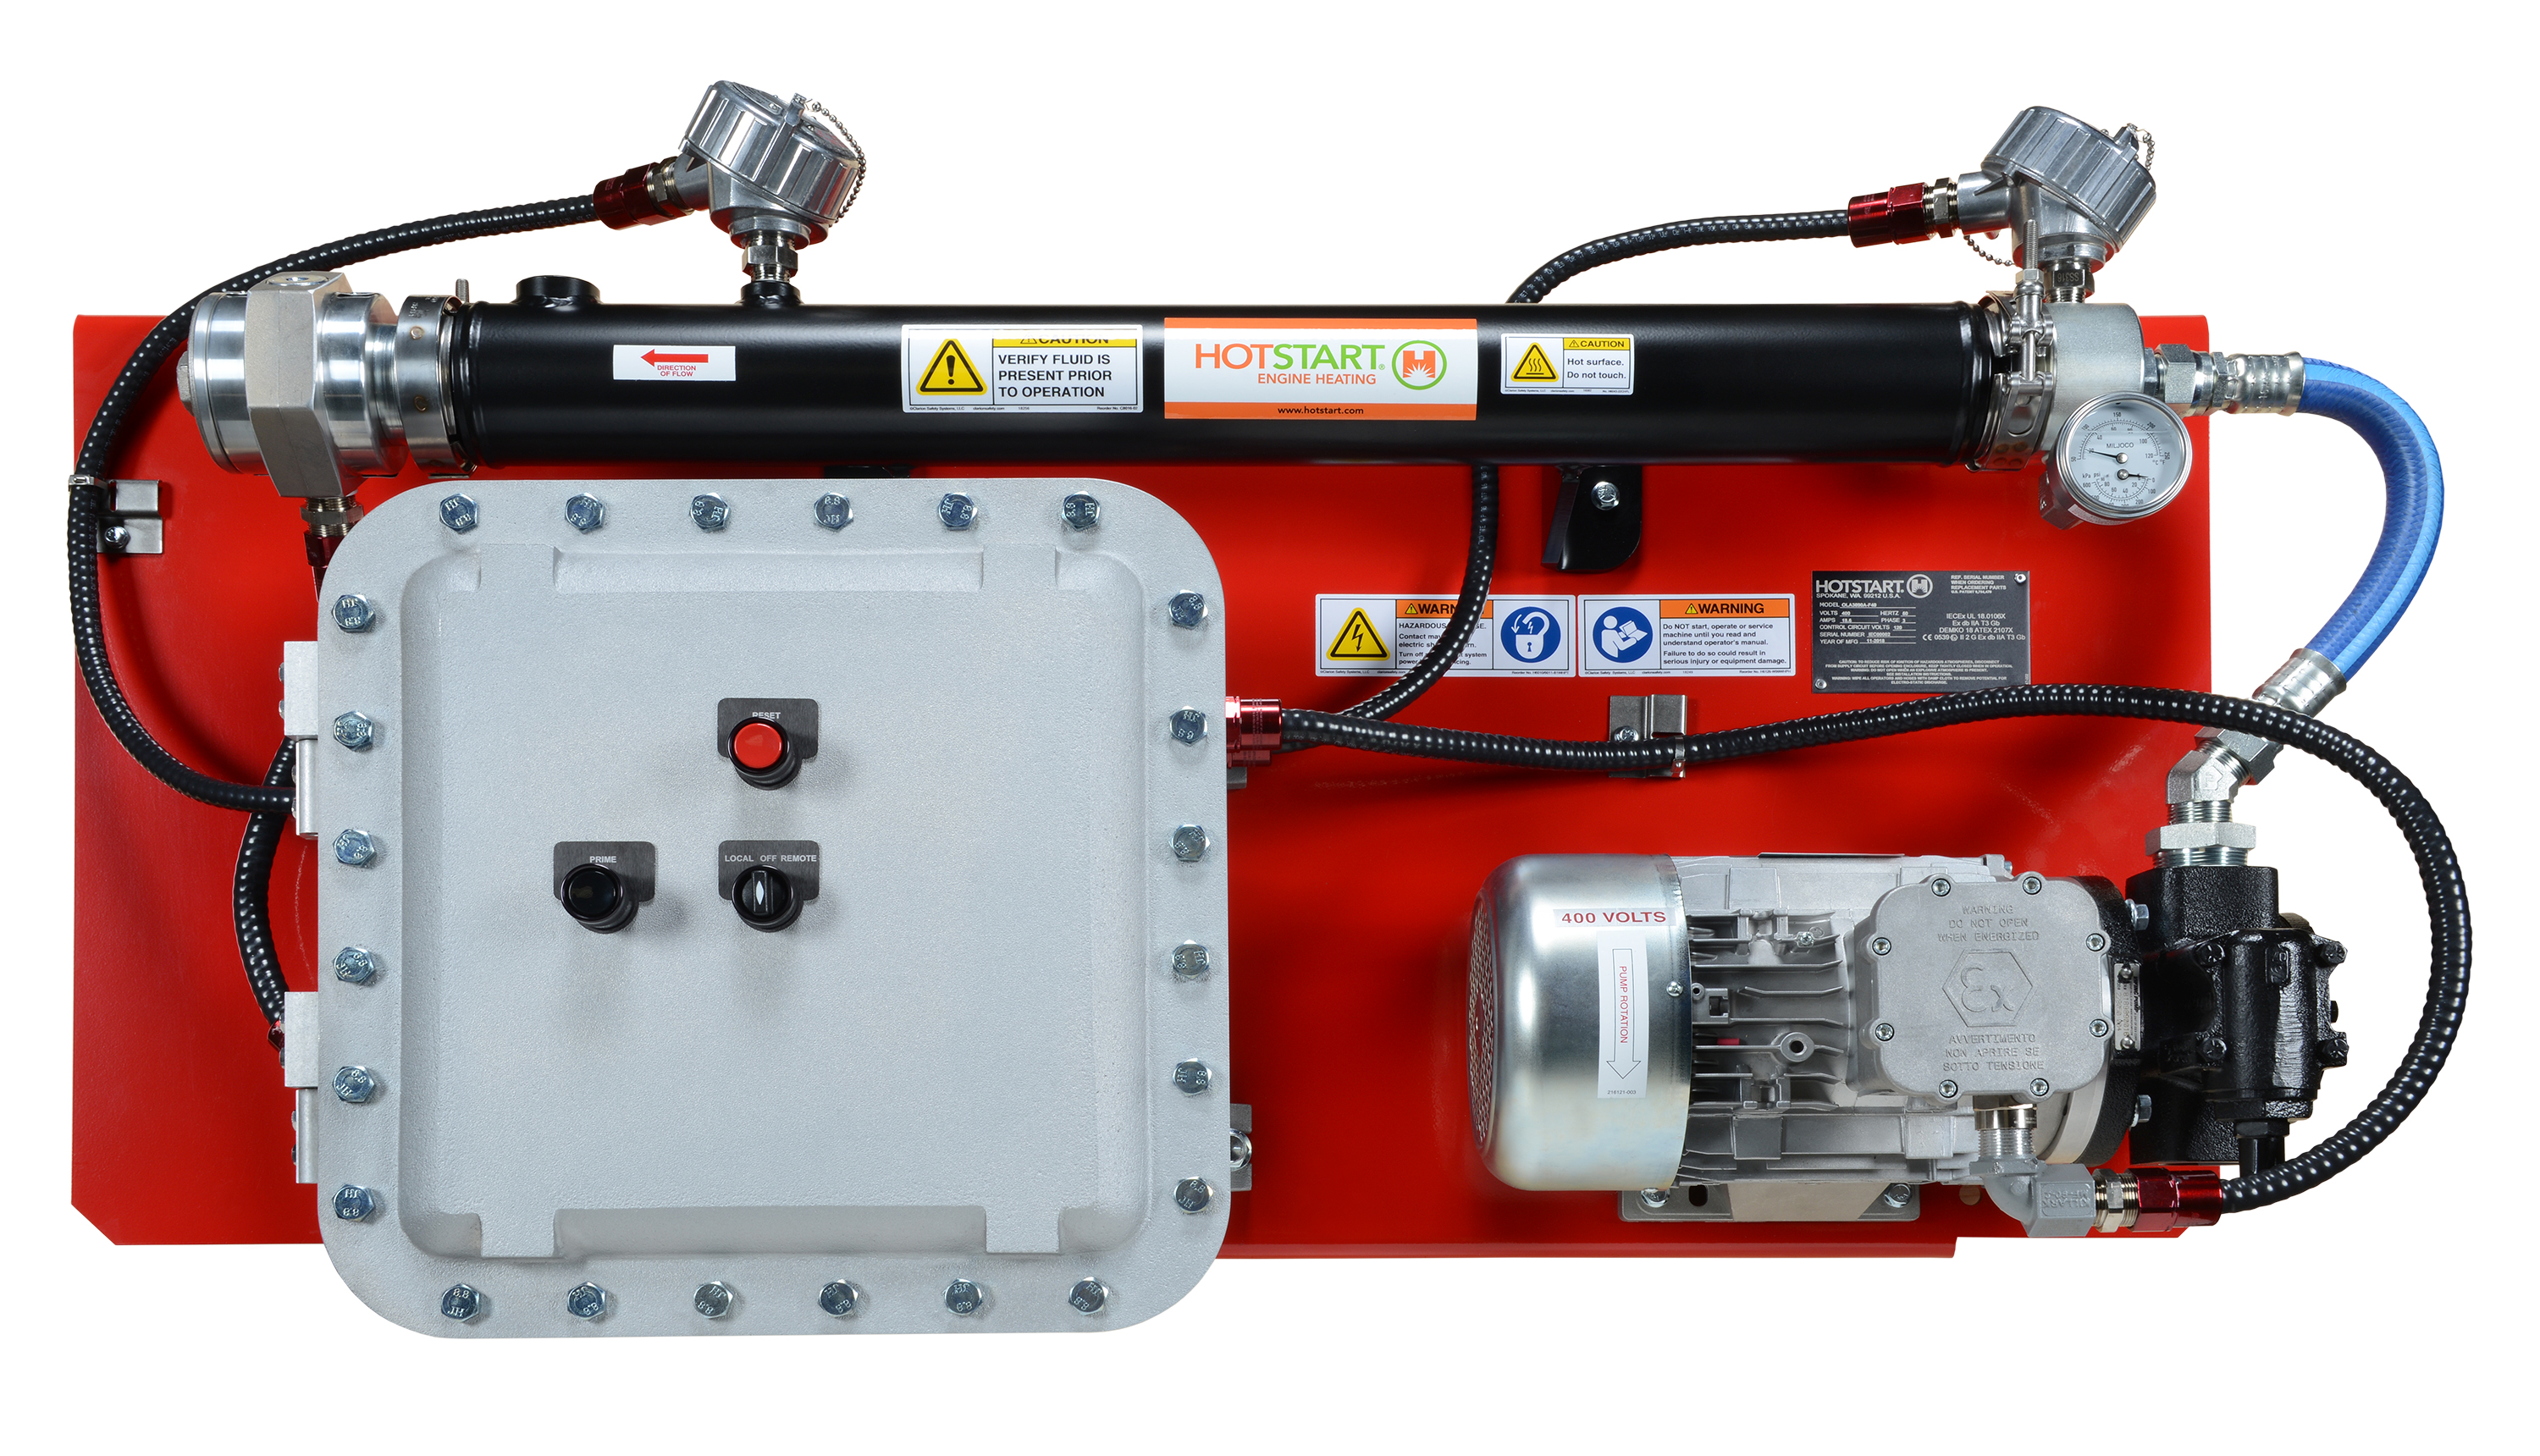 Hotstart's OLA is the largest capacity IECEx oil heating system designed for hazardous locations.